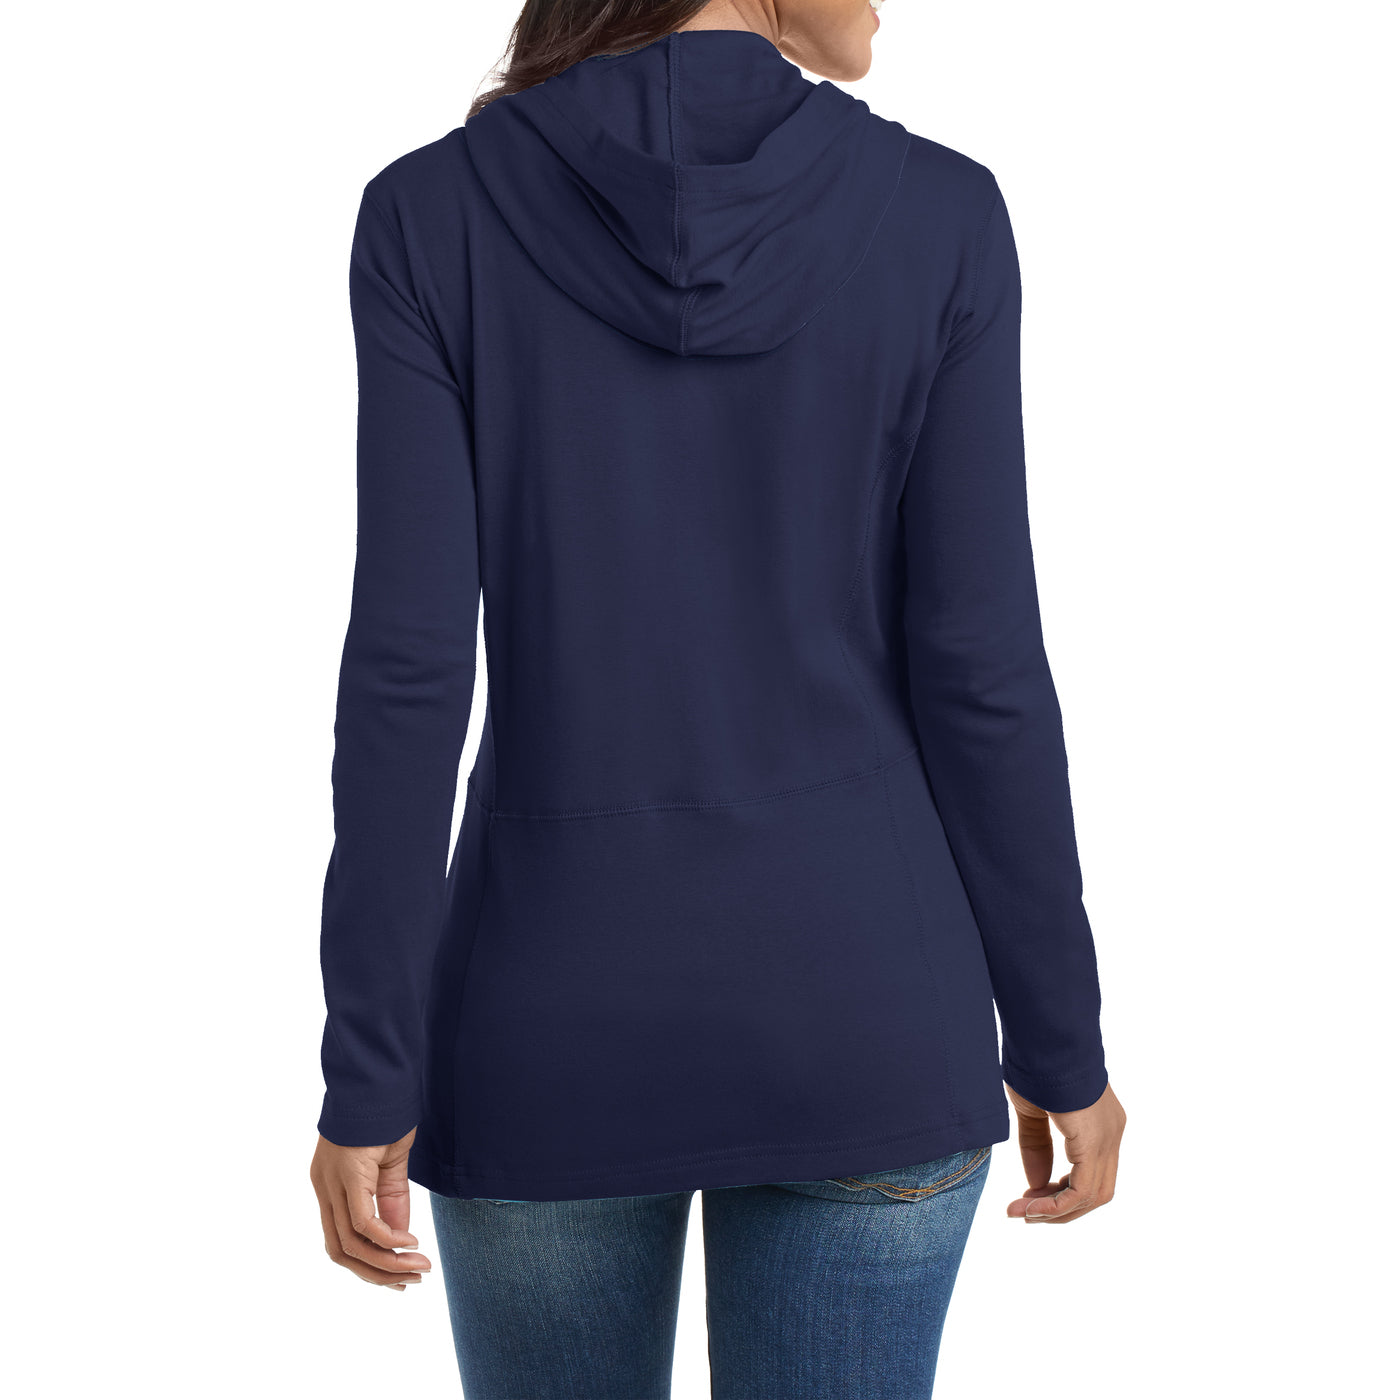 Women's Modern Stretch Cotton Full-Zip Jacket - True Navy - Back